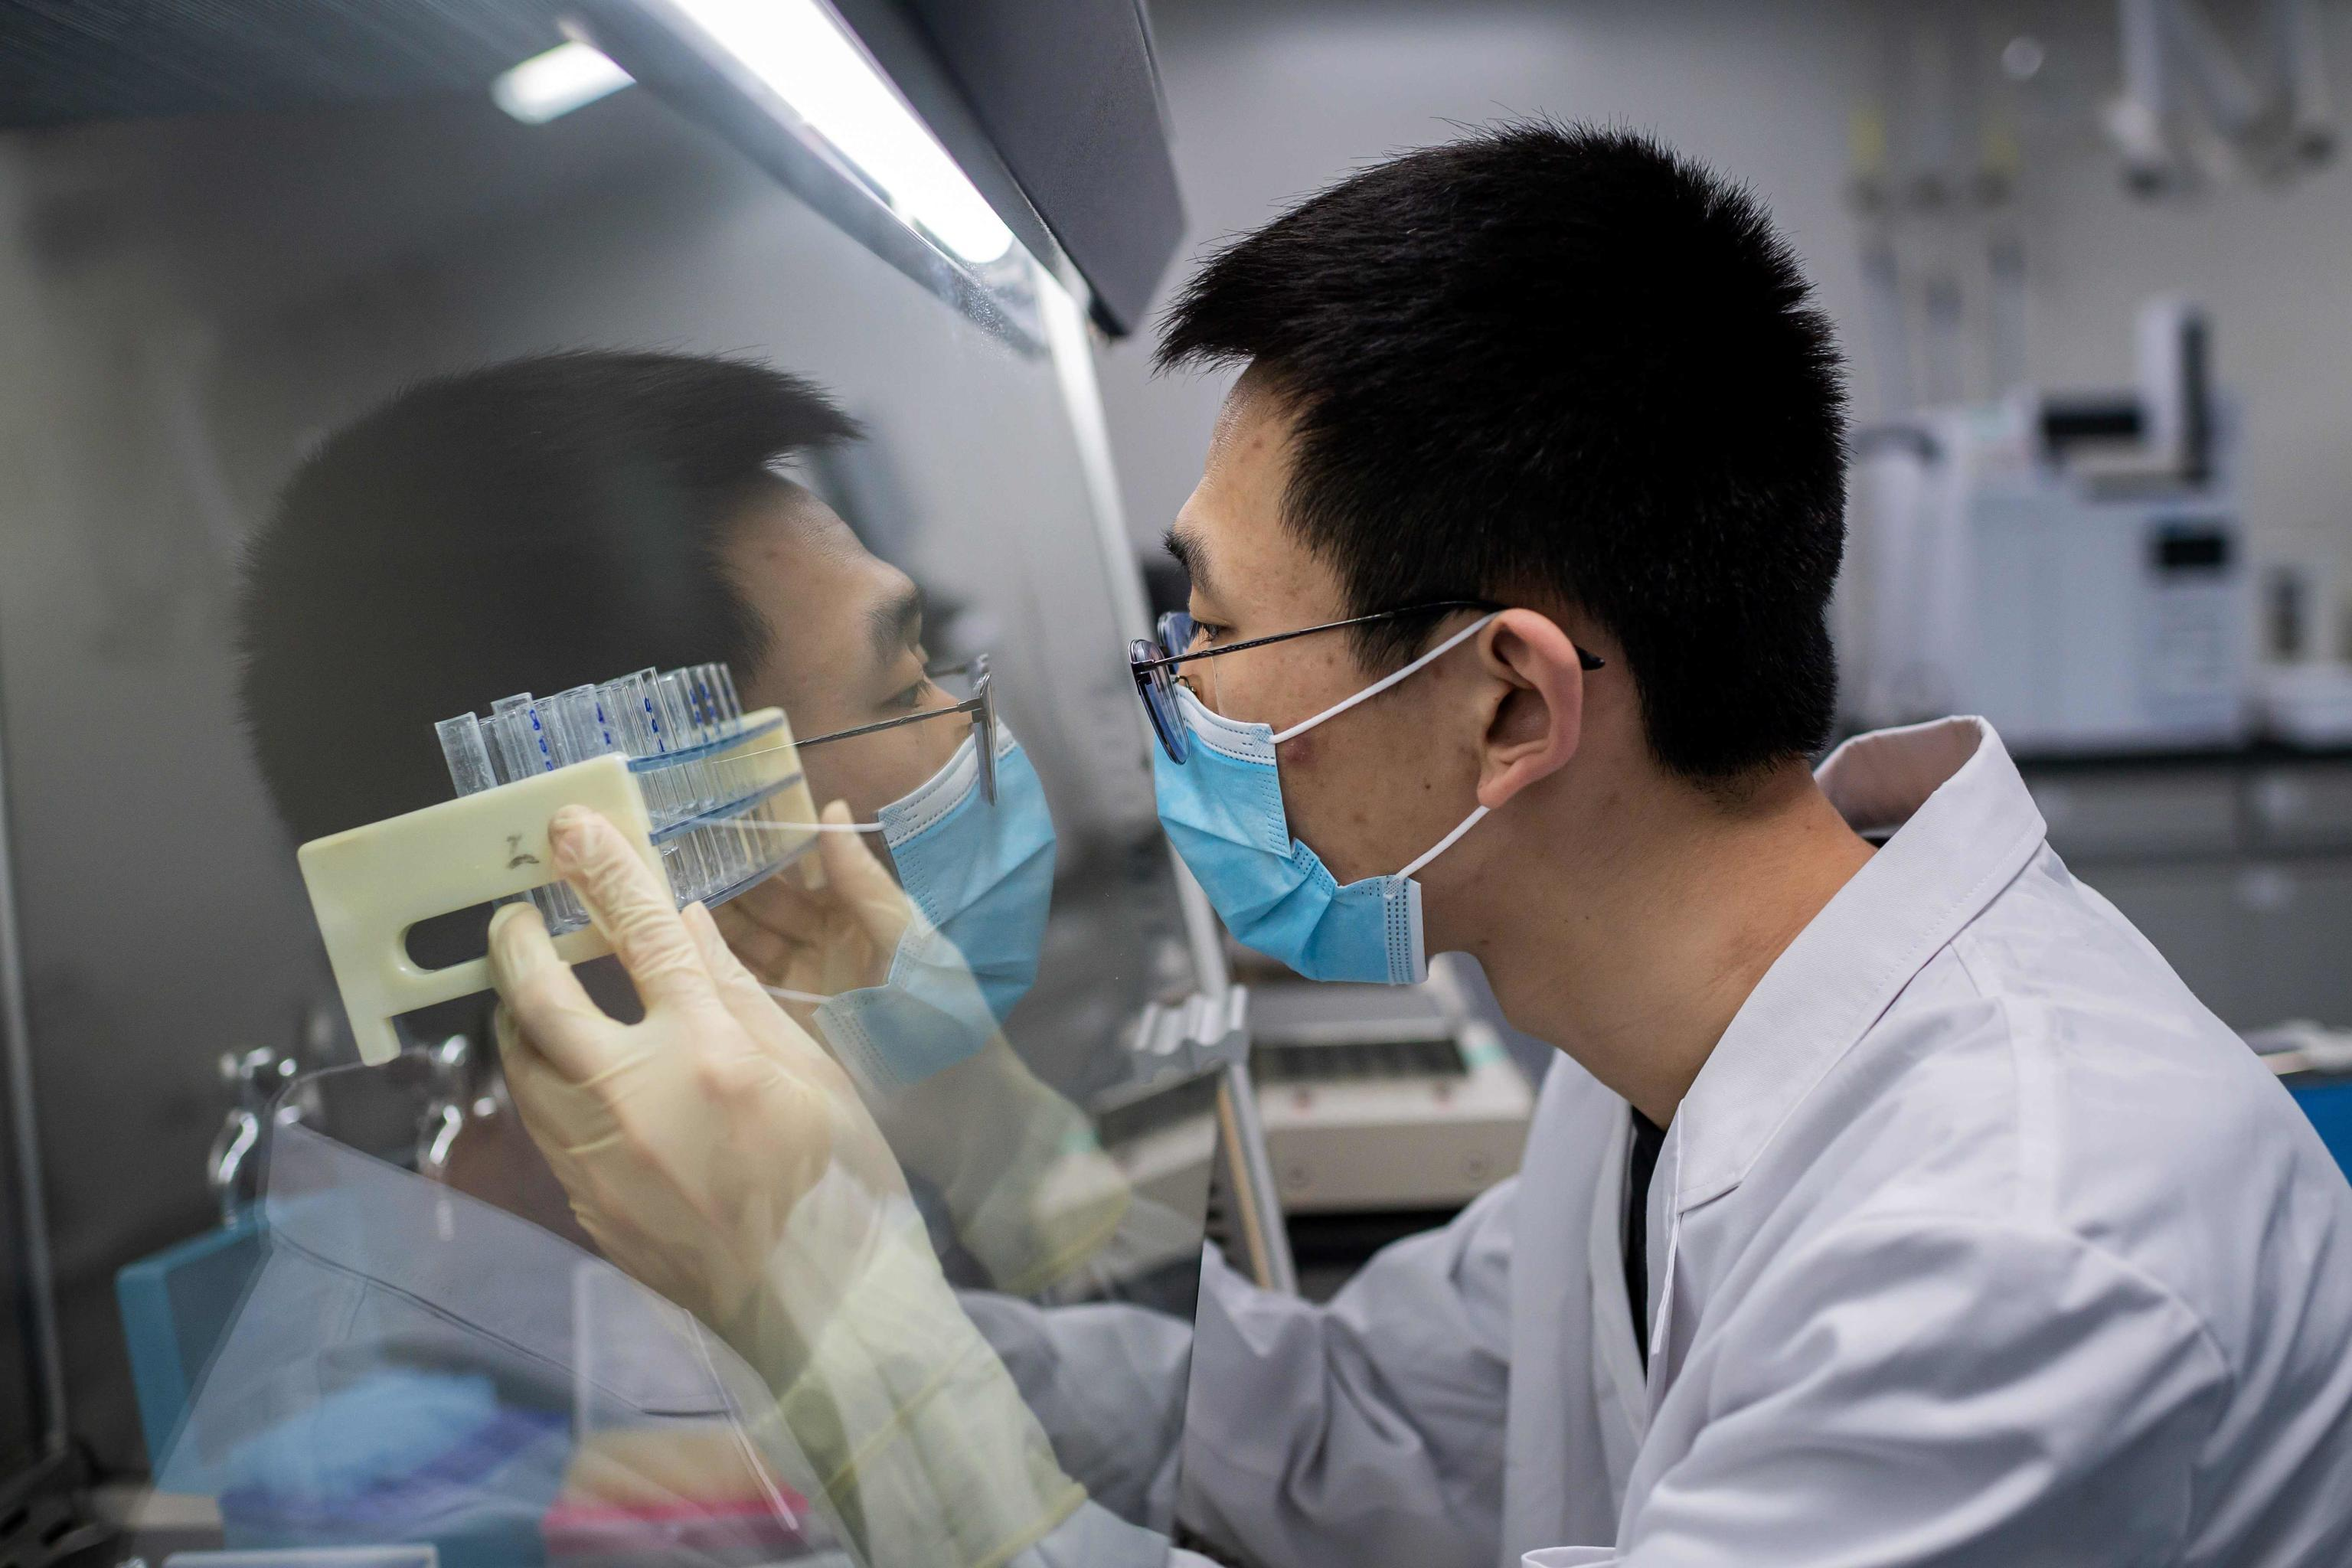 TOPSHOT - In this picture taken on April 29, 2020, an engineer works at the Quality Control Laboratory on an experimental vaccine for the COVID-19 coronavirus at the Sinovac Biotech facilities in Beijing. - Sinovac Biotech, which is conducting one of the four clinical trials that have been authorised in China, has claimed great progress in its research and promising results among monkeys. (Photo by NICOLAS ASFOURI / AFP) / TO GO WITH Health-virus-China-vaccine,FOCUS by Patrick Baert